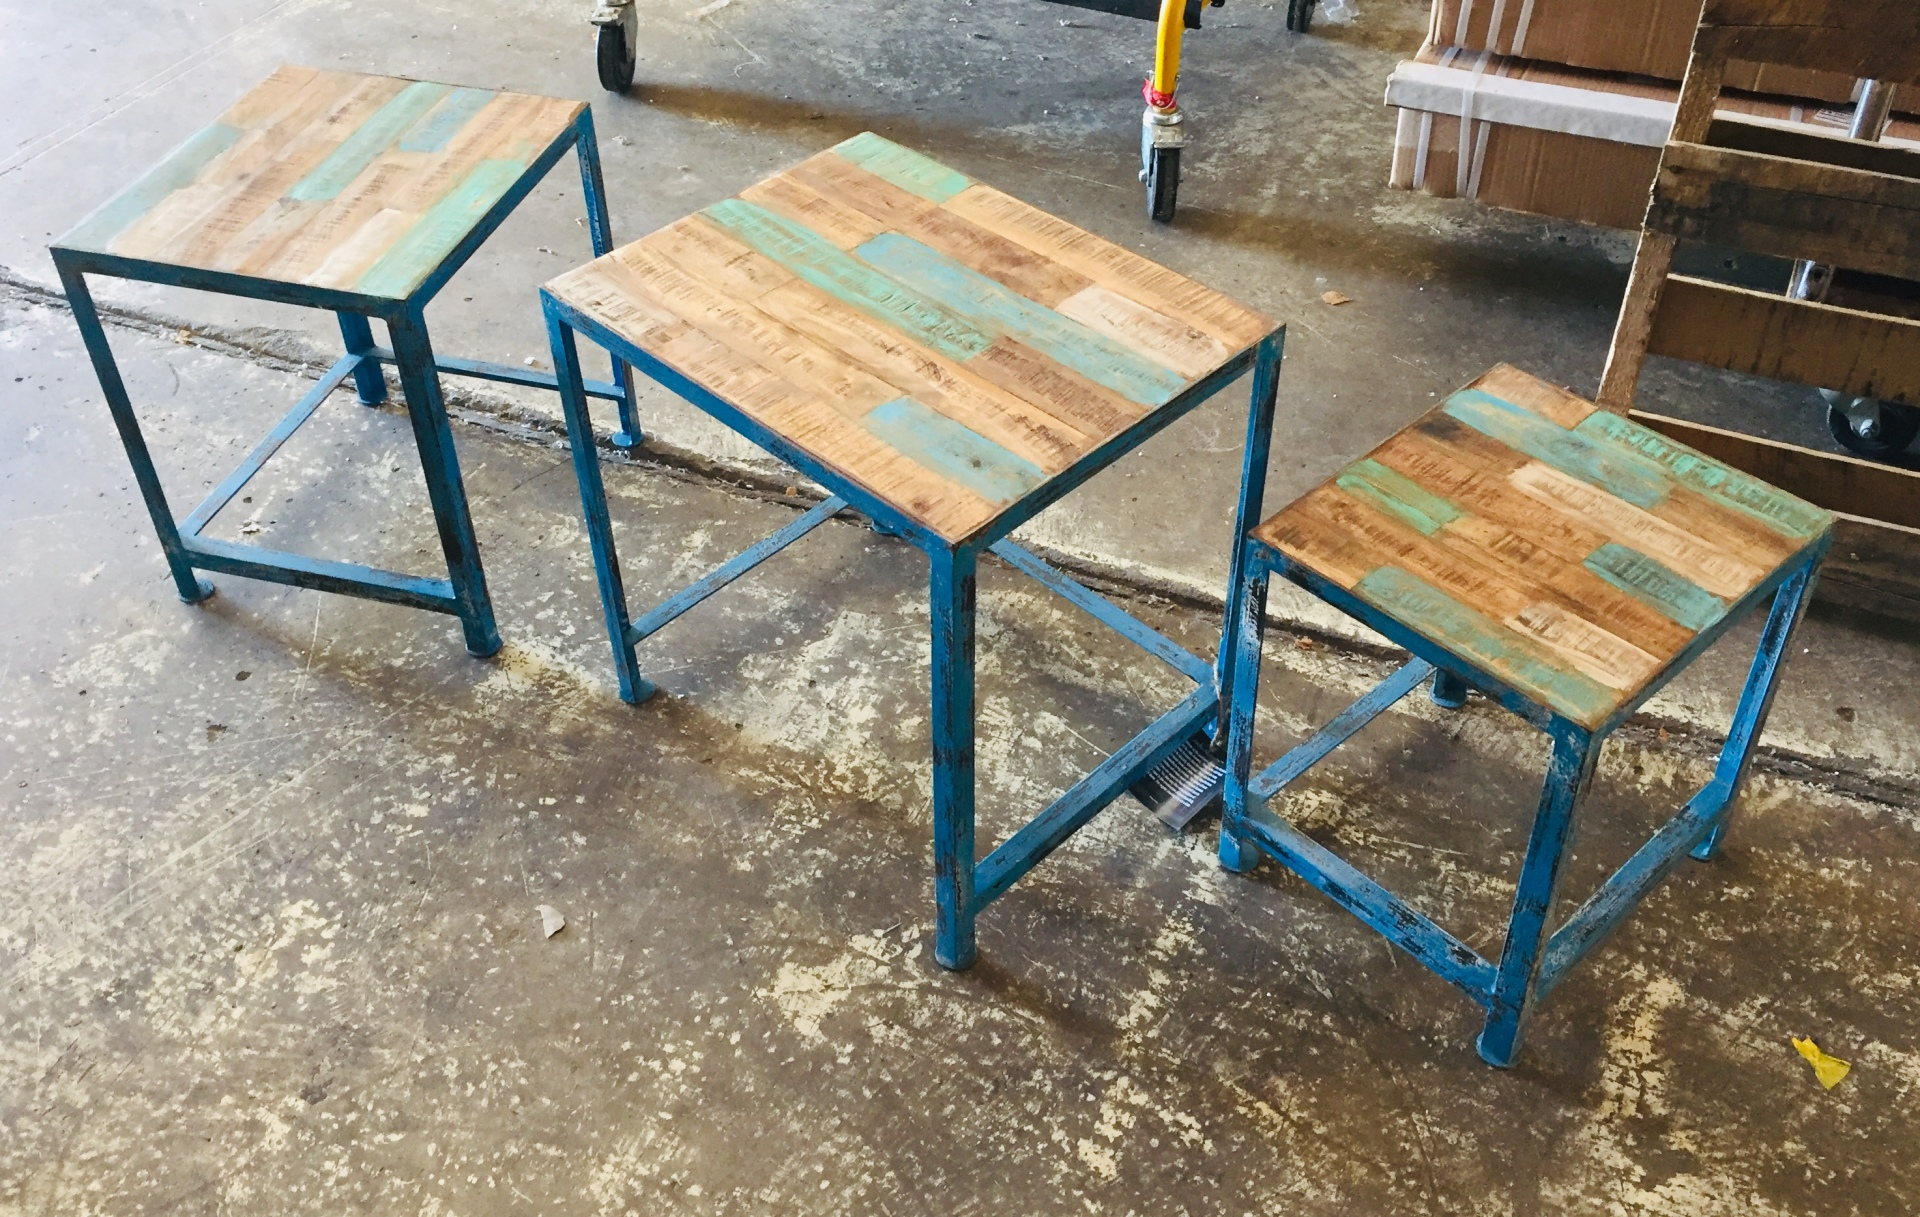 COAST TO COAST NESTING TABLES (STACK UNDER ONE ANOTHER)